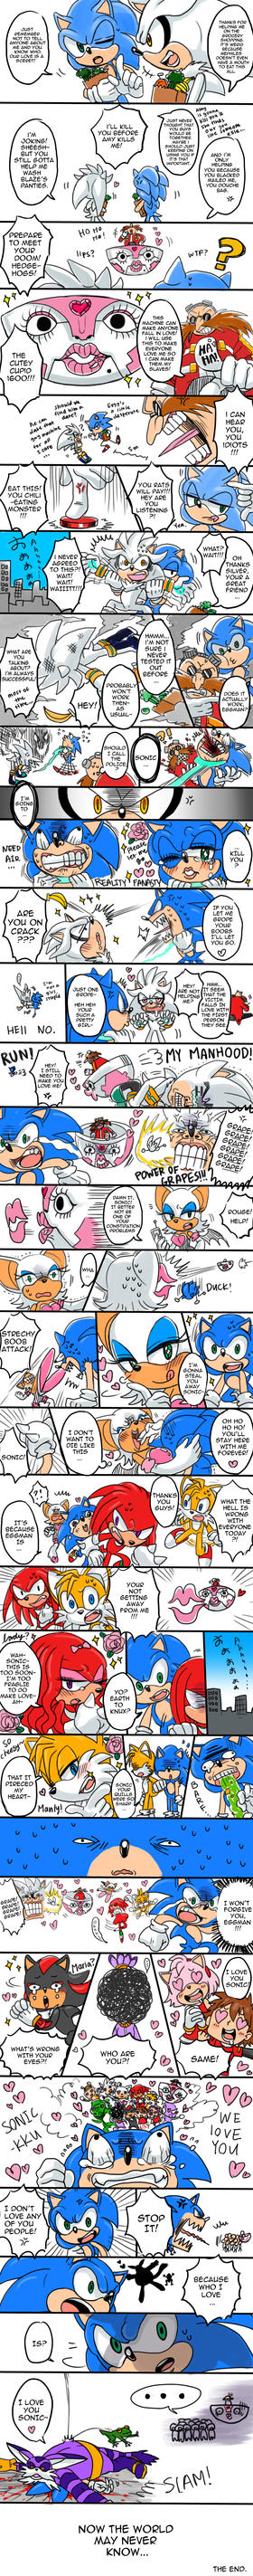 EVERYONE LOVE SONIC COMIC by C2ndy2c1d